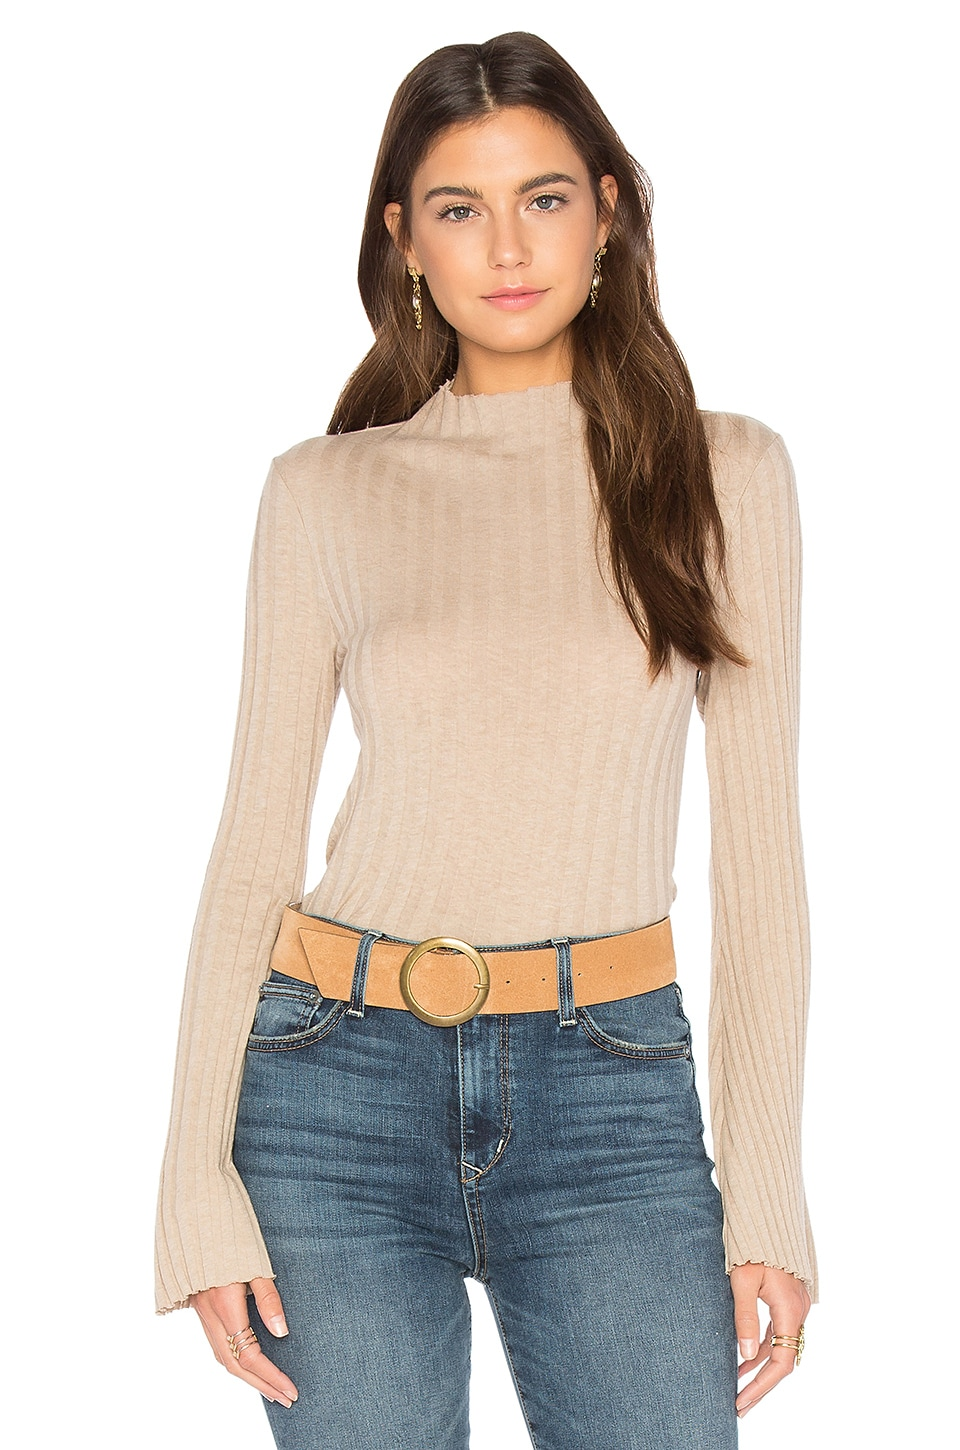 Cashmere Rib Mock Neck Tee by Enza Costa